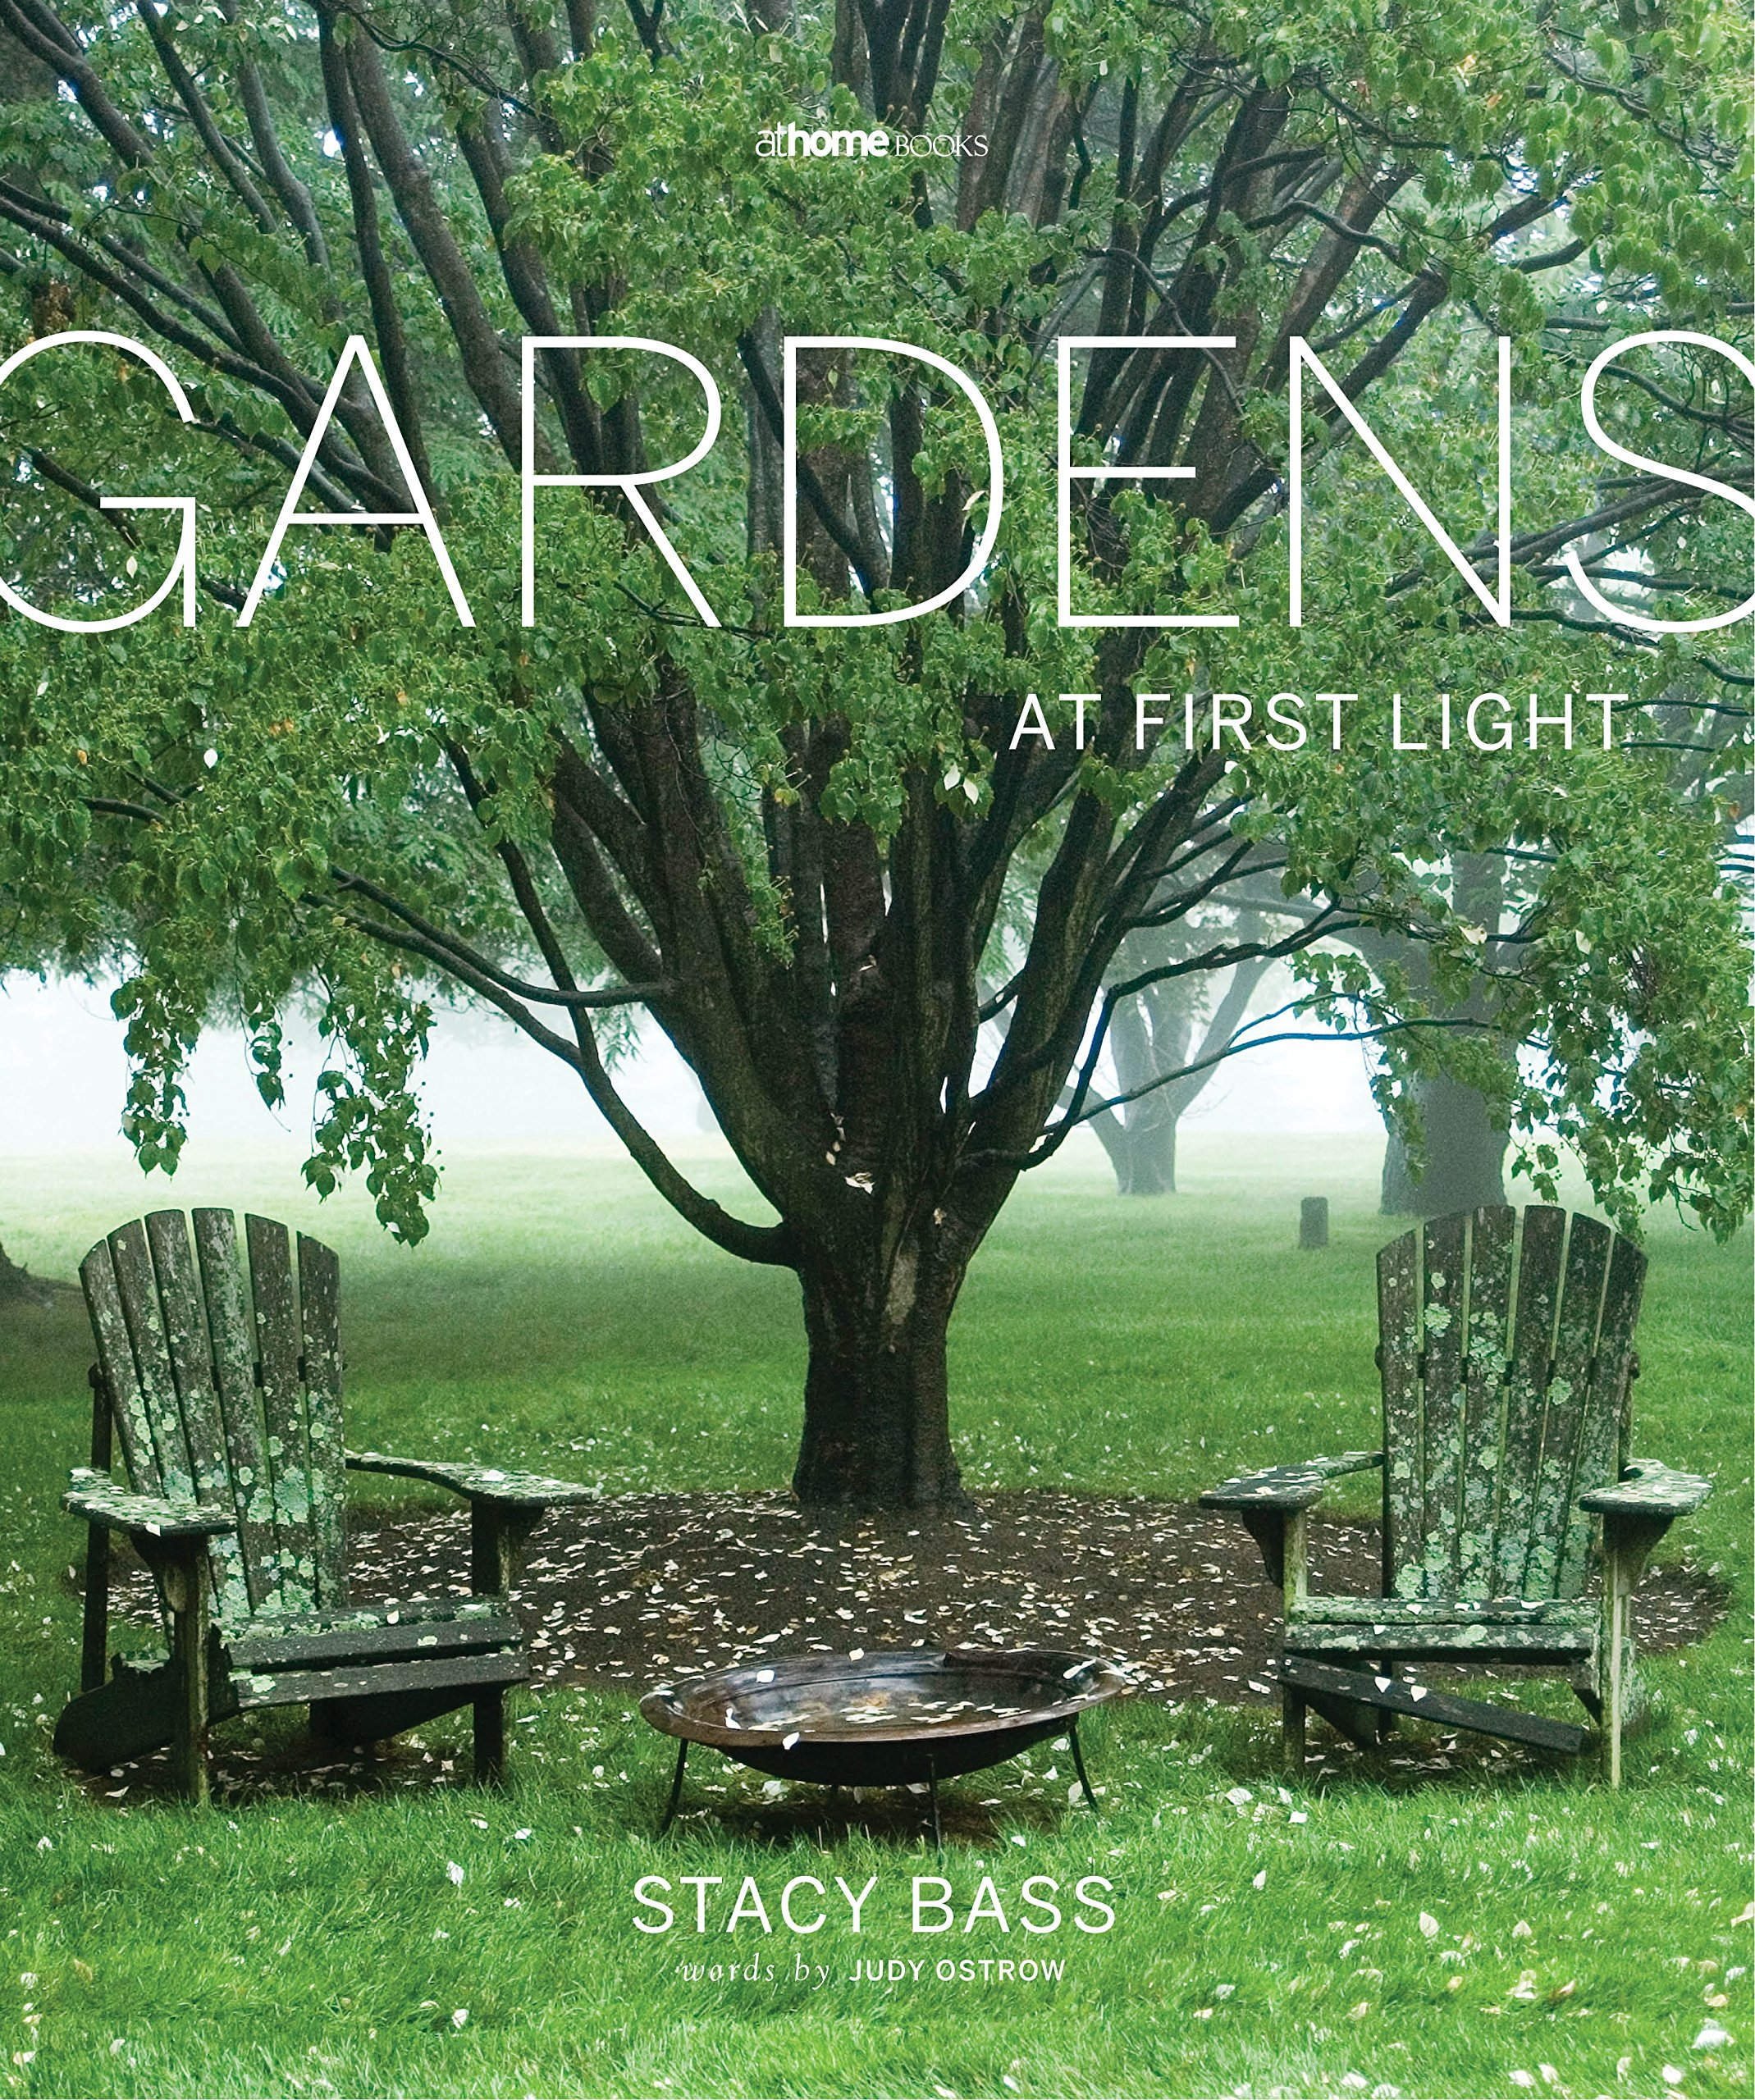 Gardens at First Light Amazoncouk Stacy Bass 9780986268908 Books